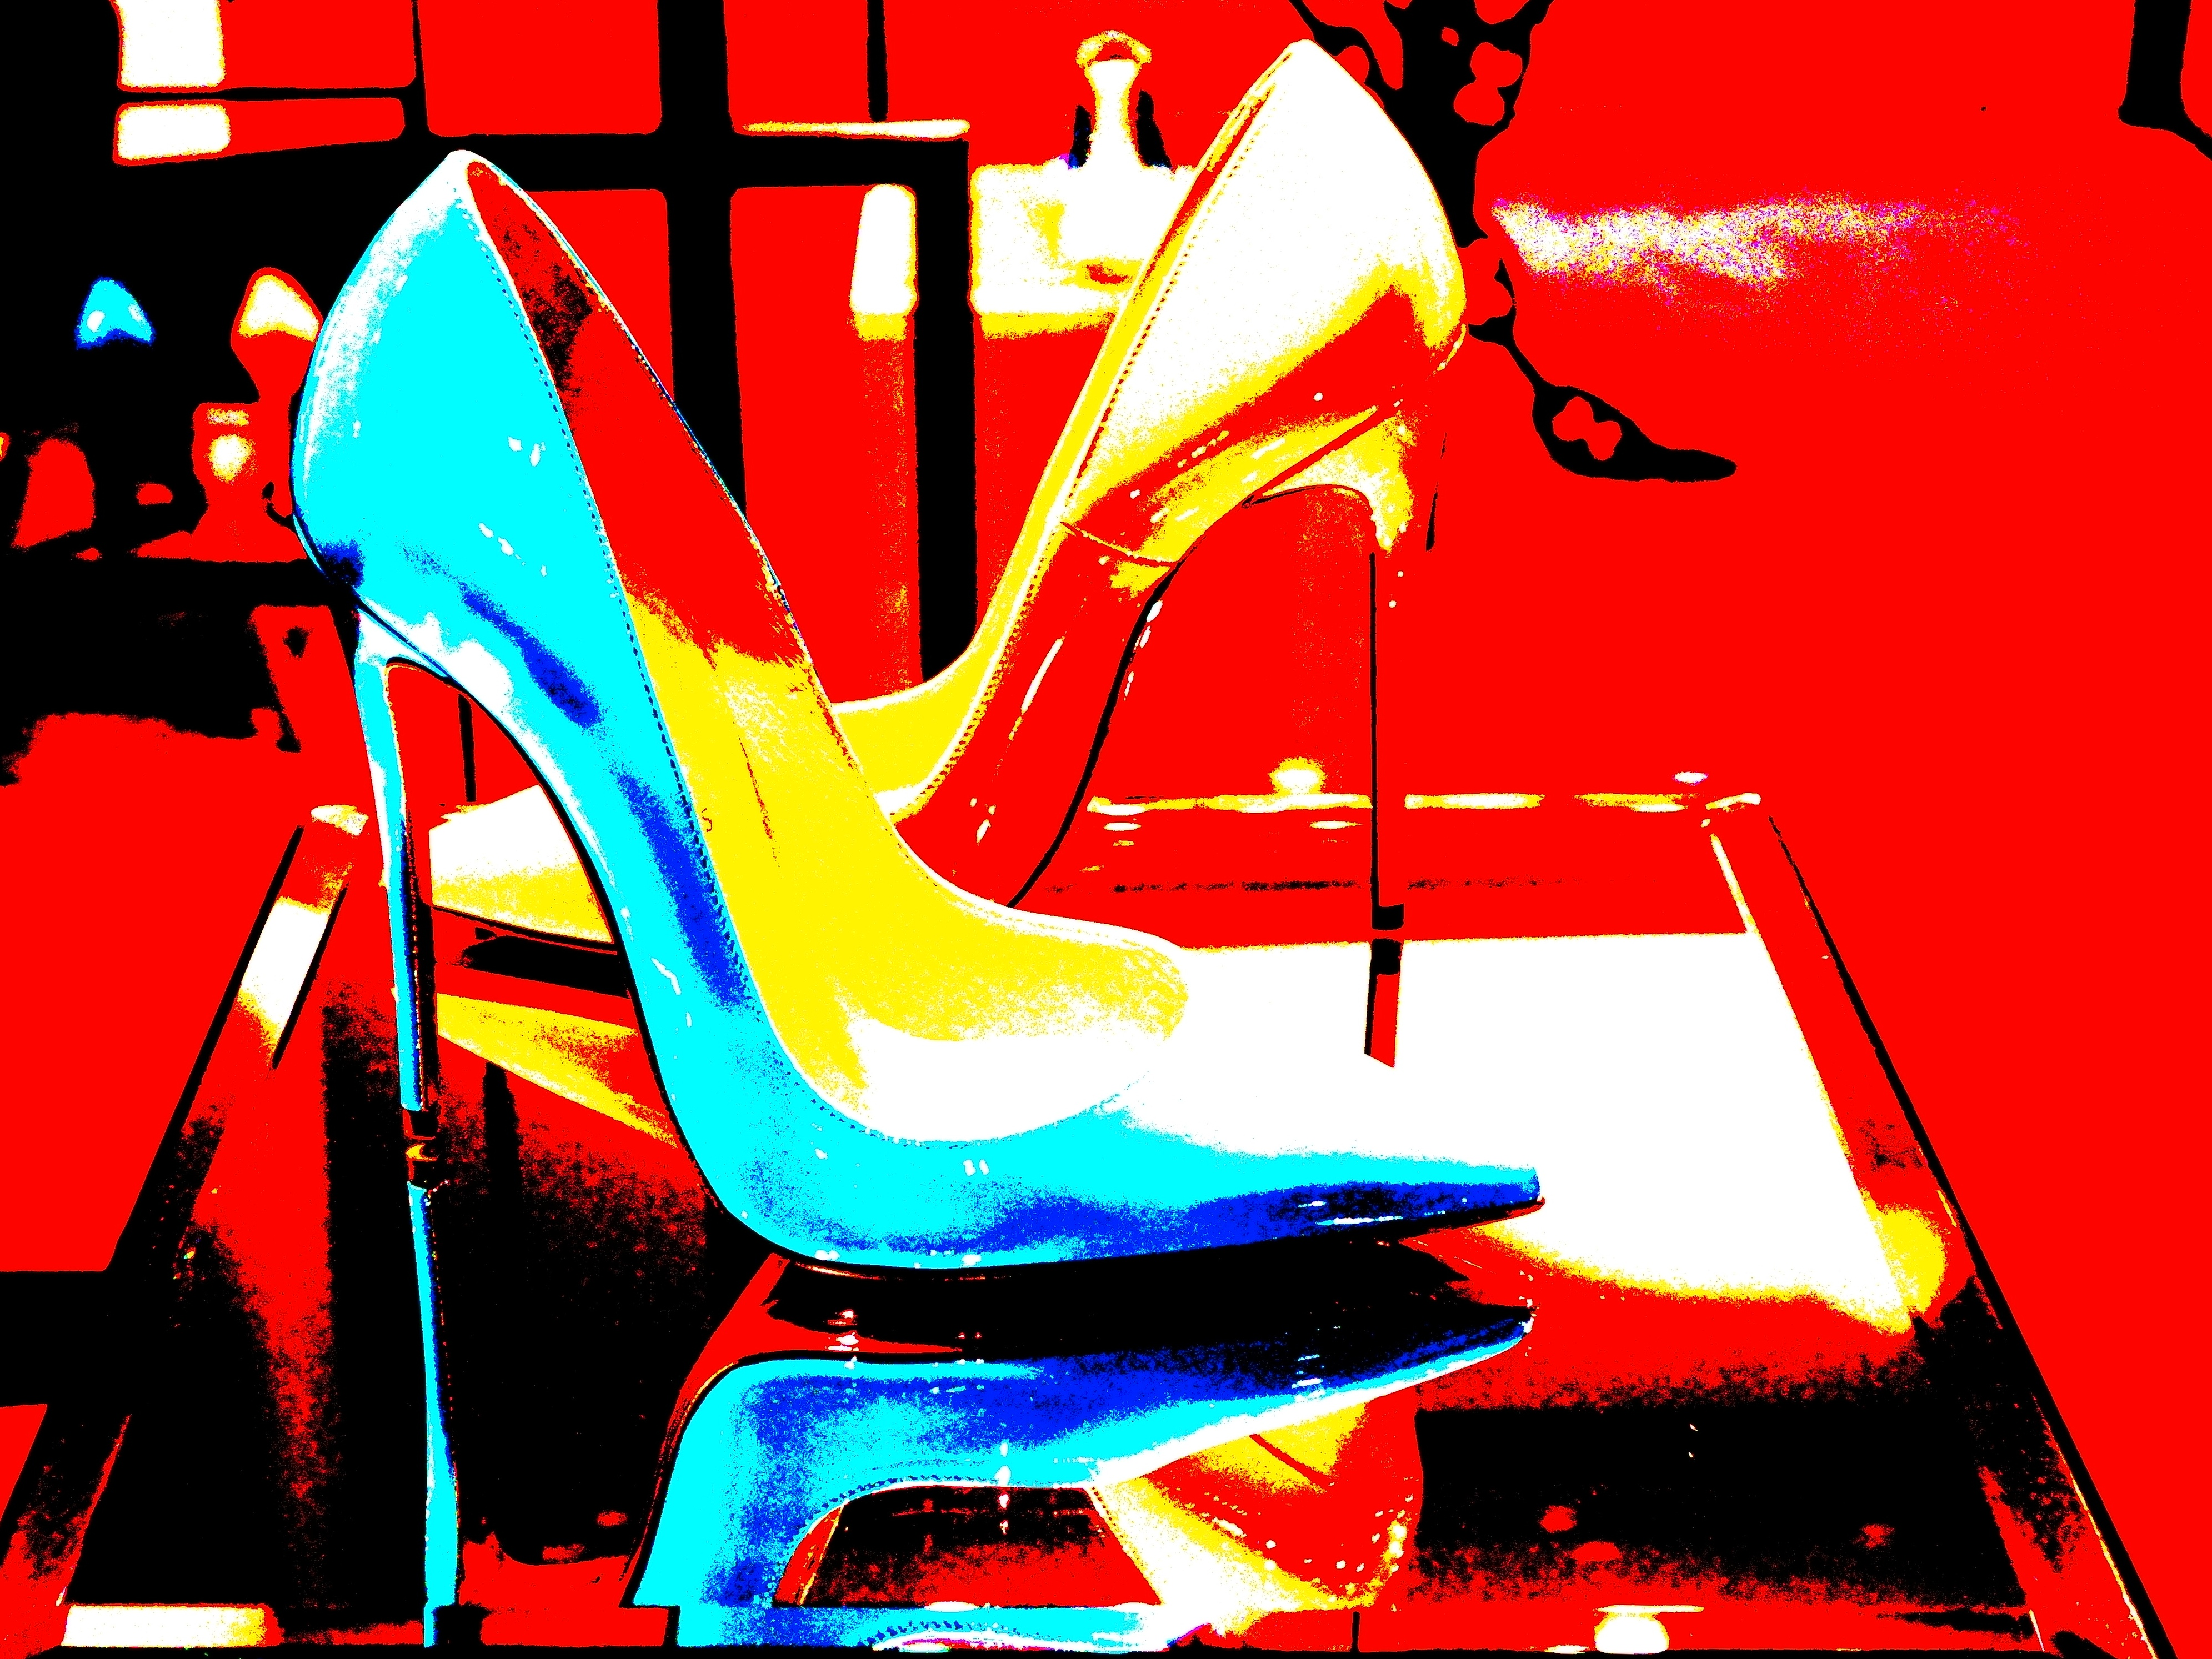 two high heels author dreizler bob taken thru sa